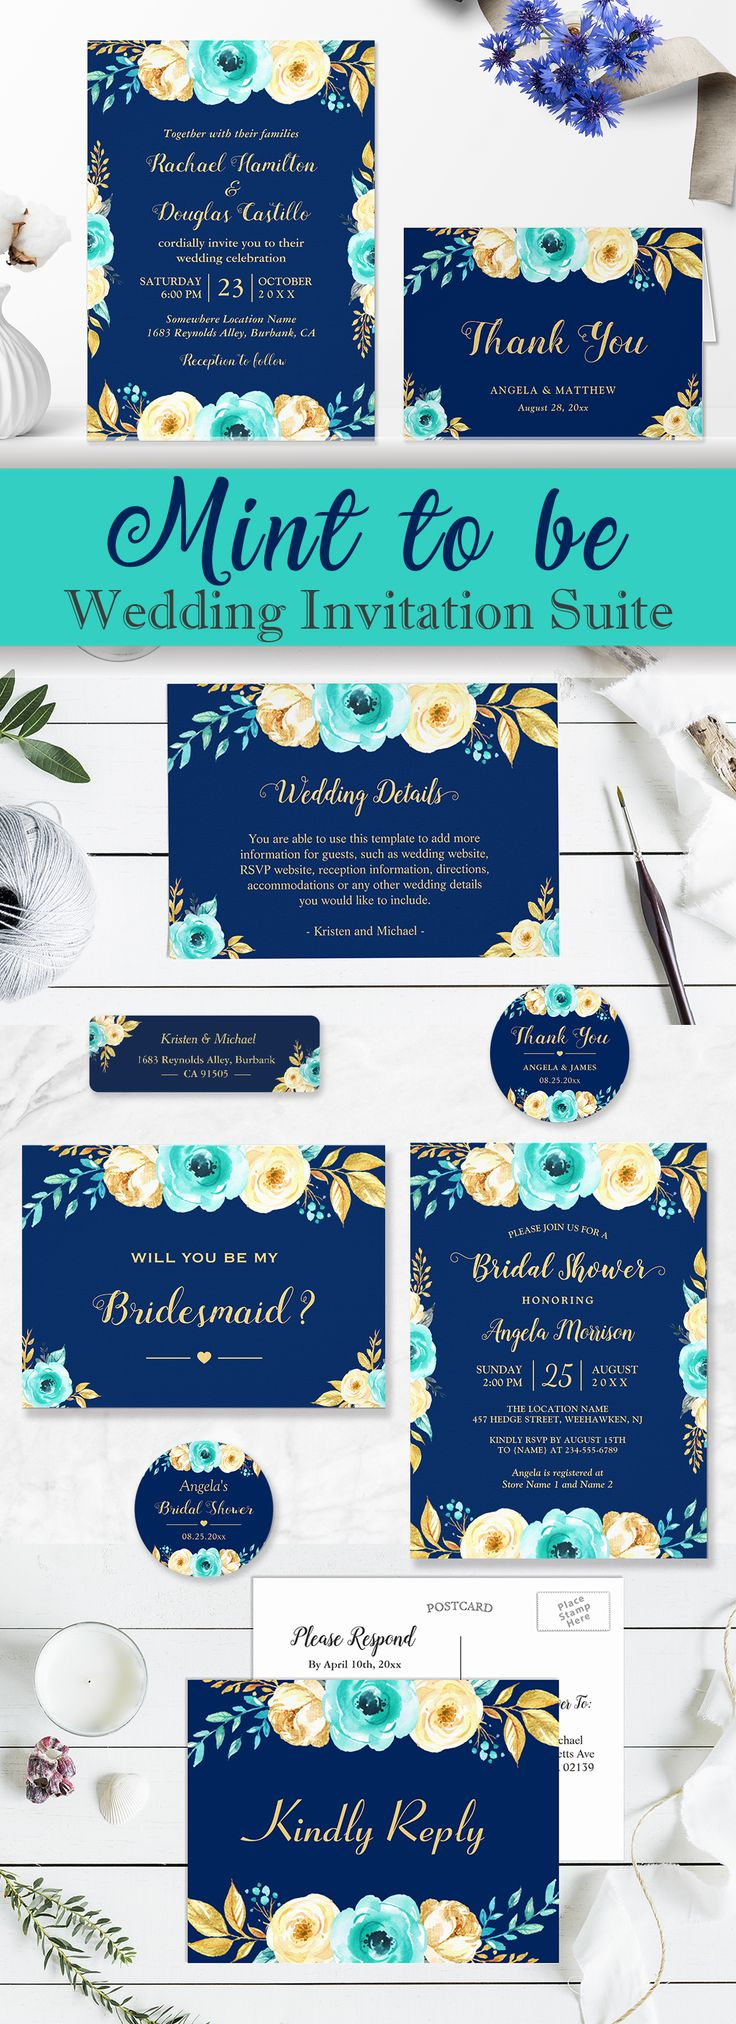 fast shipping wedding invitations%0A Navy Blue  u     Teal Mint Gold Floral Wedding Invitation Suite